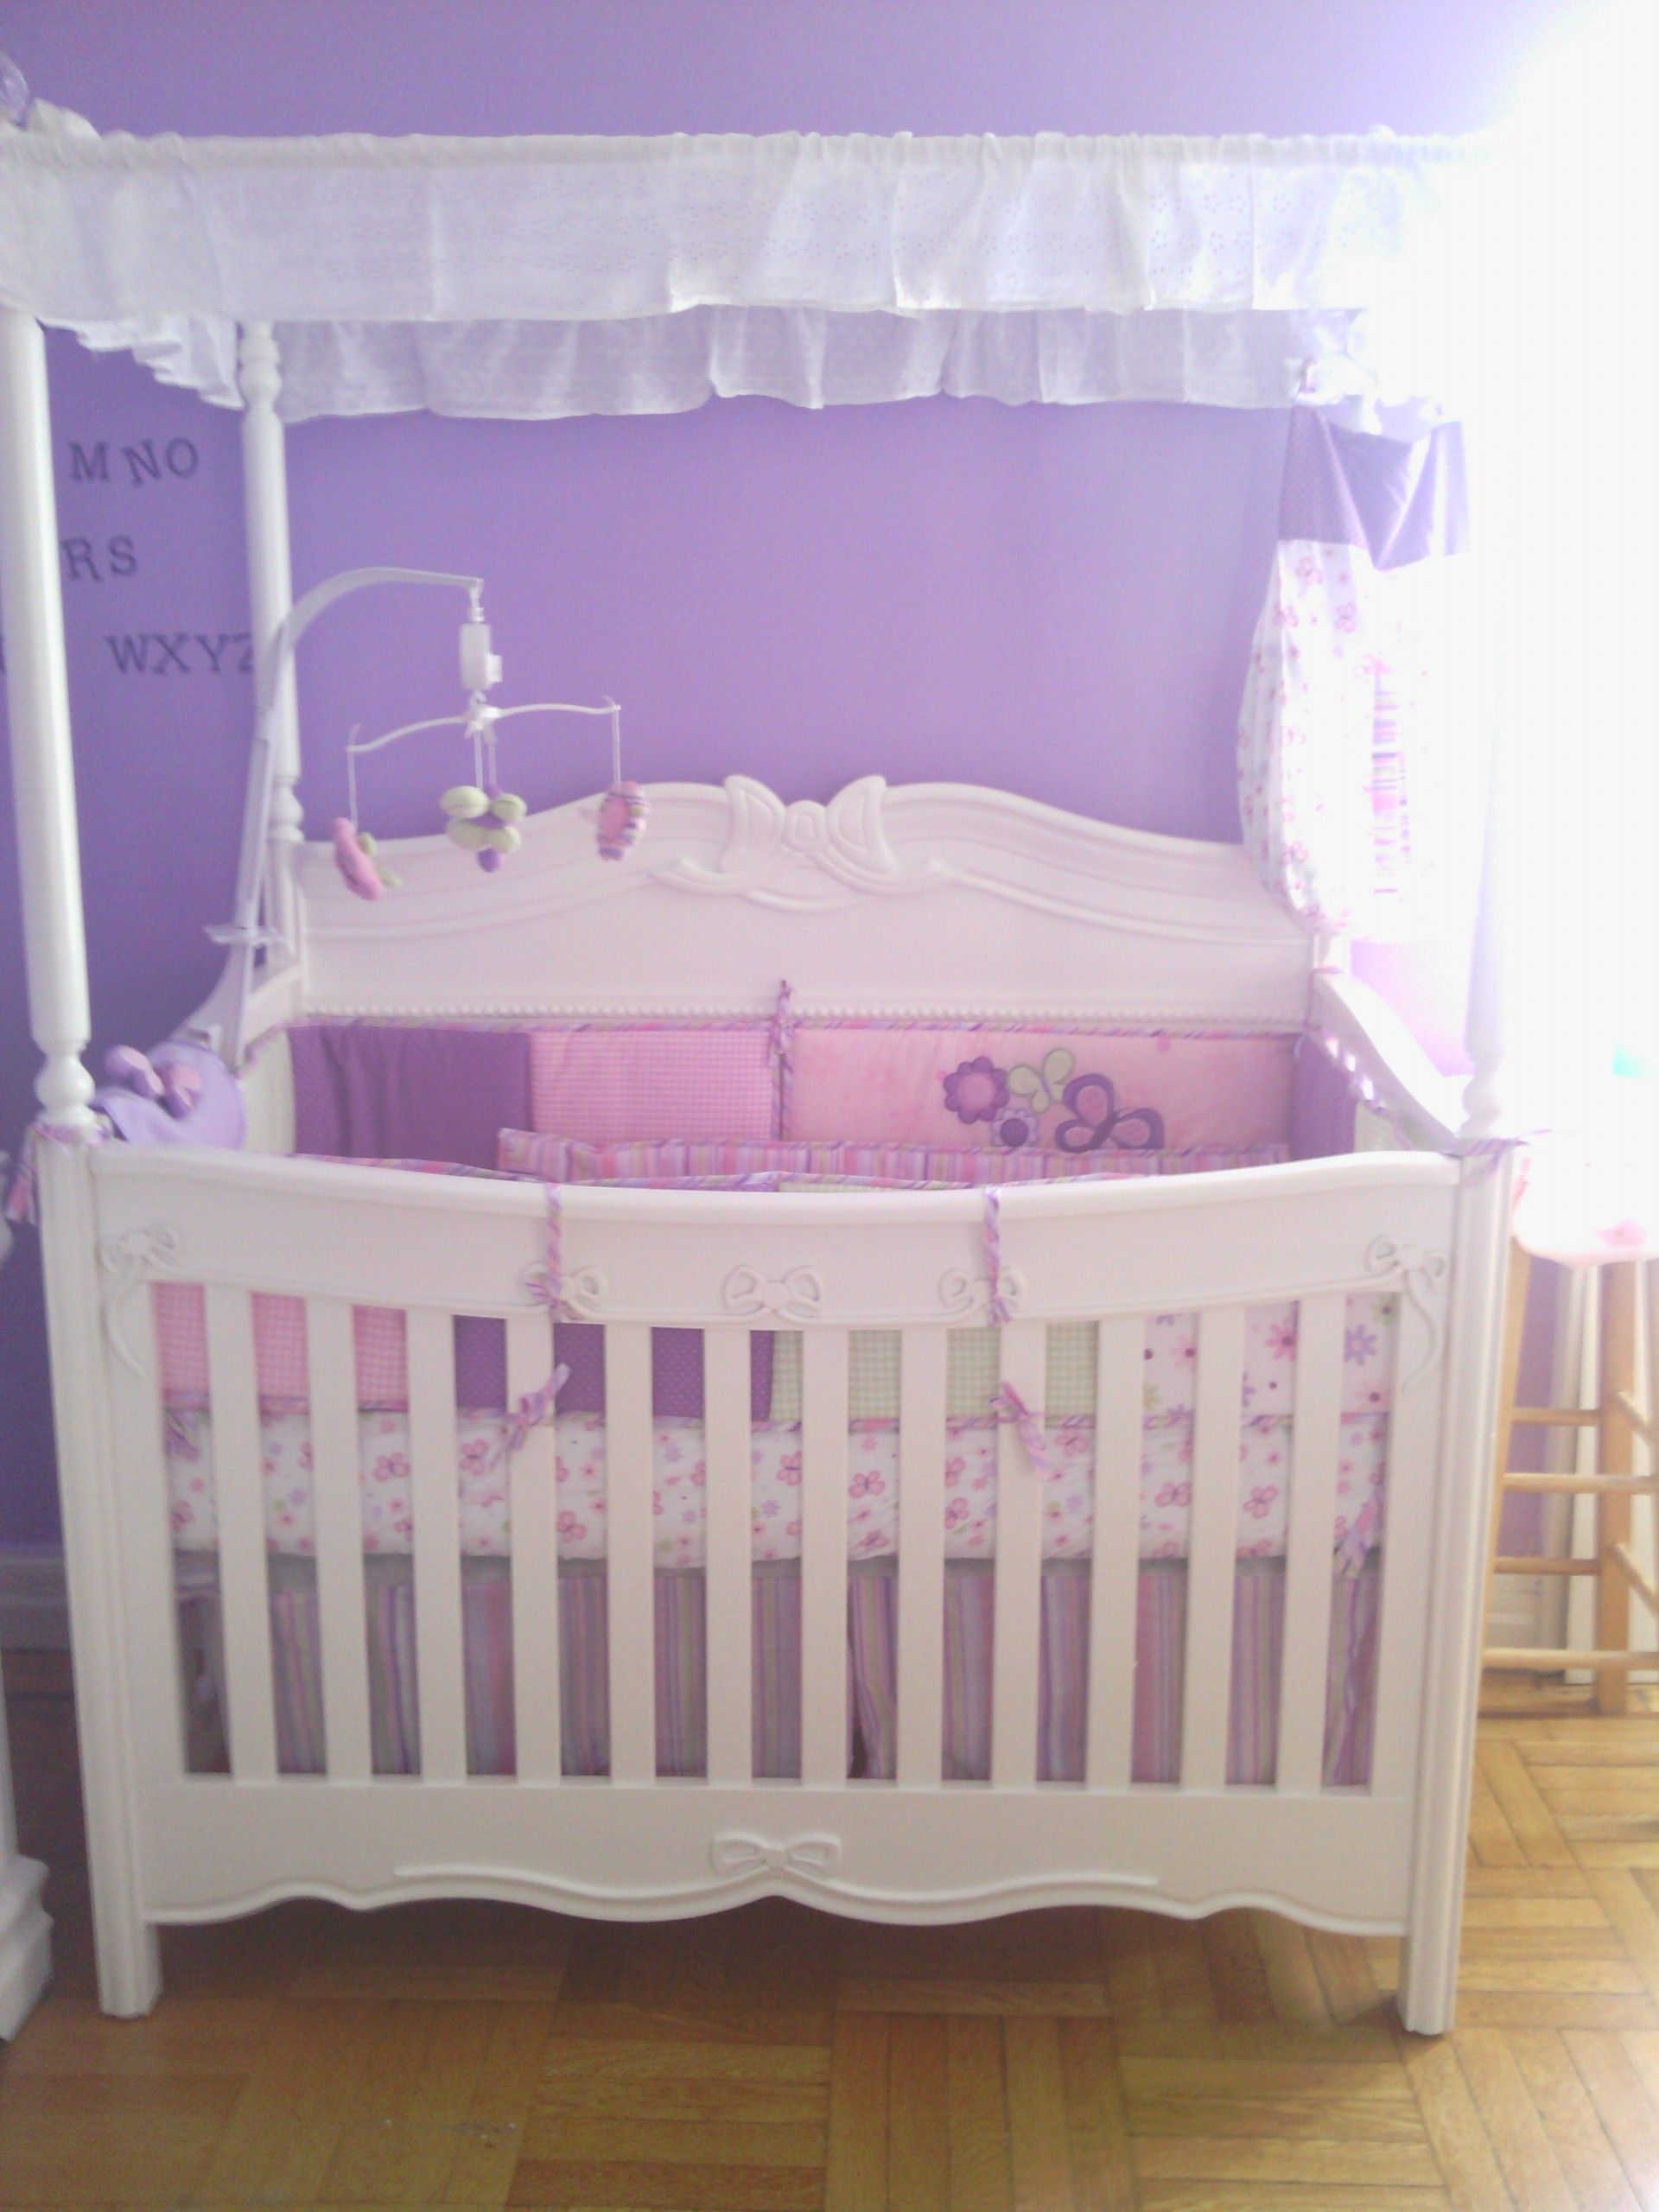 canopy crib | My babyu0027s princess white canopy convertible crib! & canopy crib | My babyu0027s princess white canopy convertible crib ...